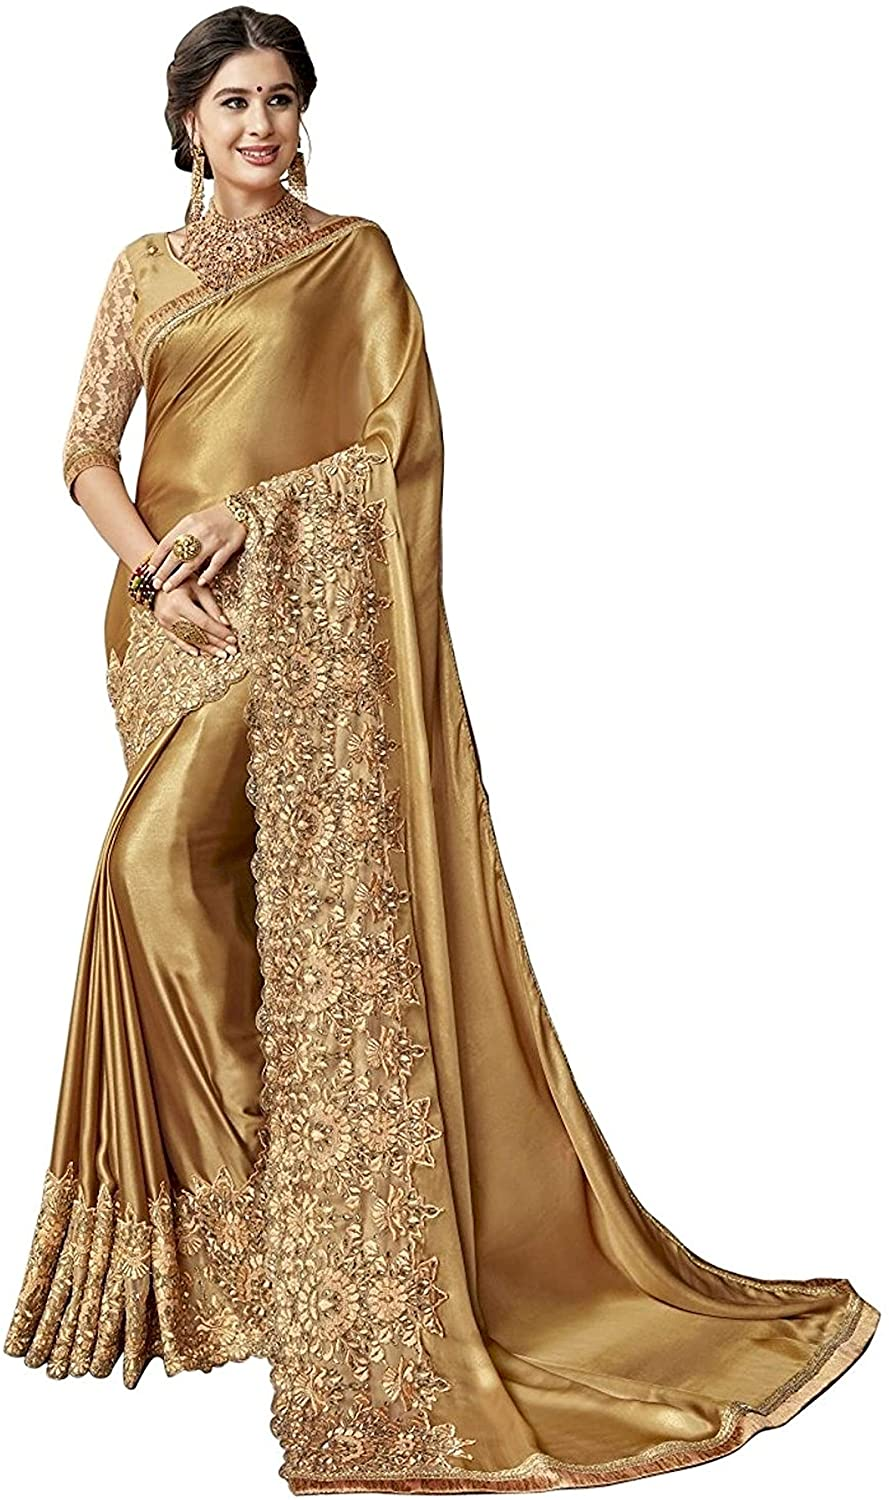 Sarvadarshi Fashion Women's Designer Fabric Lycra embroidery Gold Saree With Unstitched Blouse piece